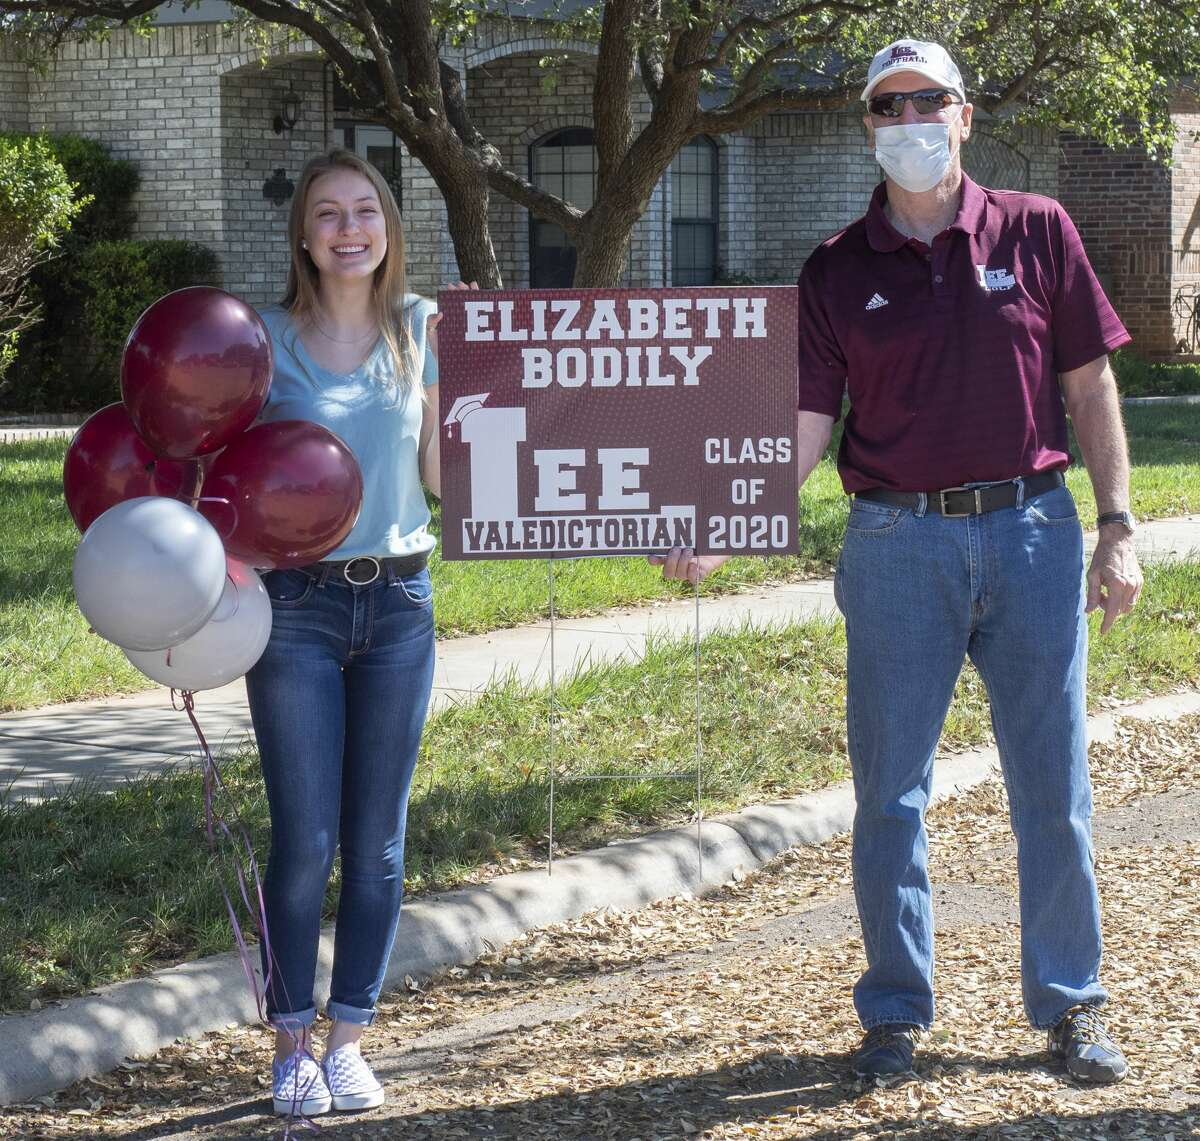 Lee High administrators and counselors caravan through town 04/24/2020 stopping to honor the top 10 seniors of 2020. Principal Stan VanHoozer presents Elizabeth Bodily the #1, valedictorian senior for LHS. Tim Fischer/Reporter-Telegram